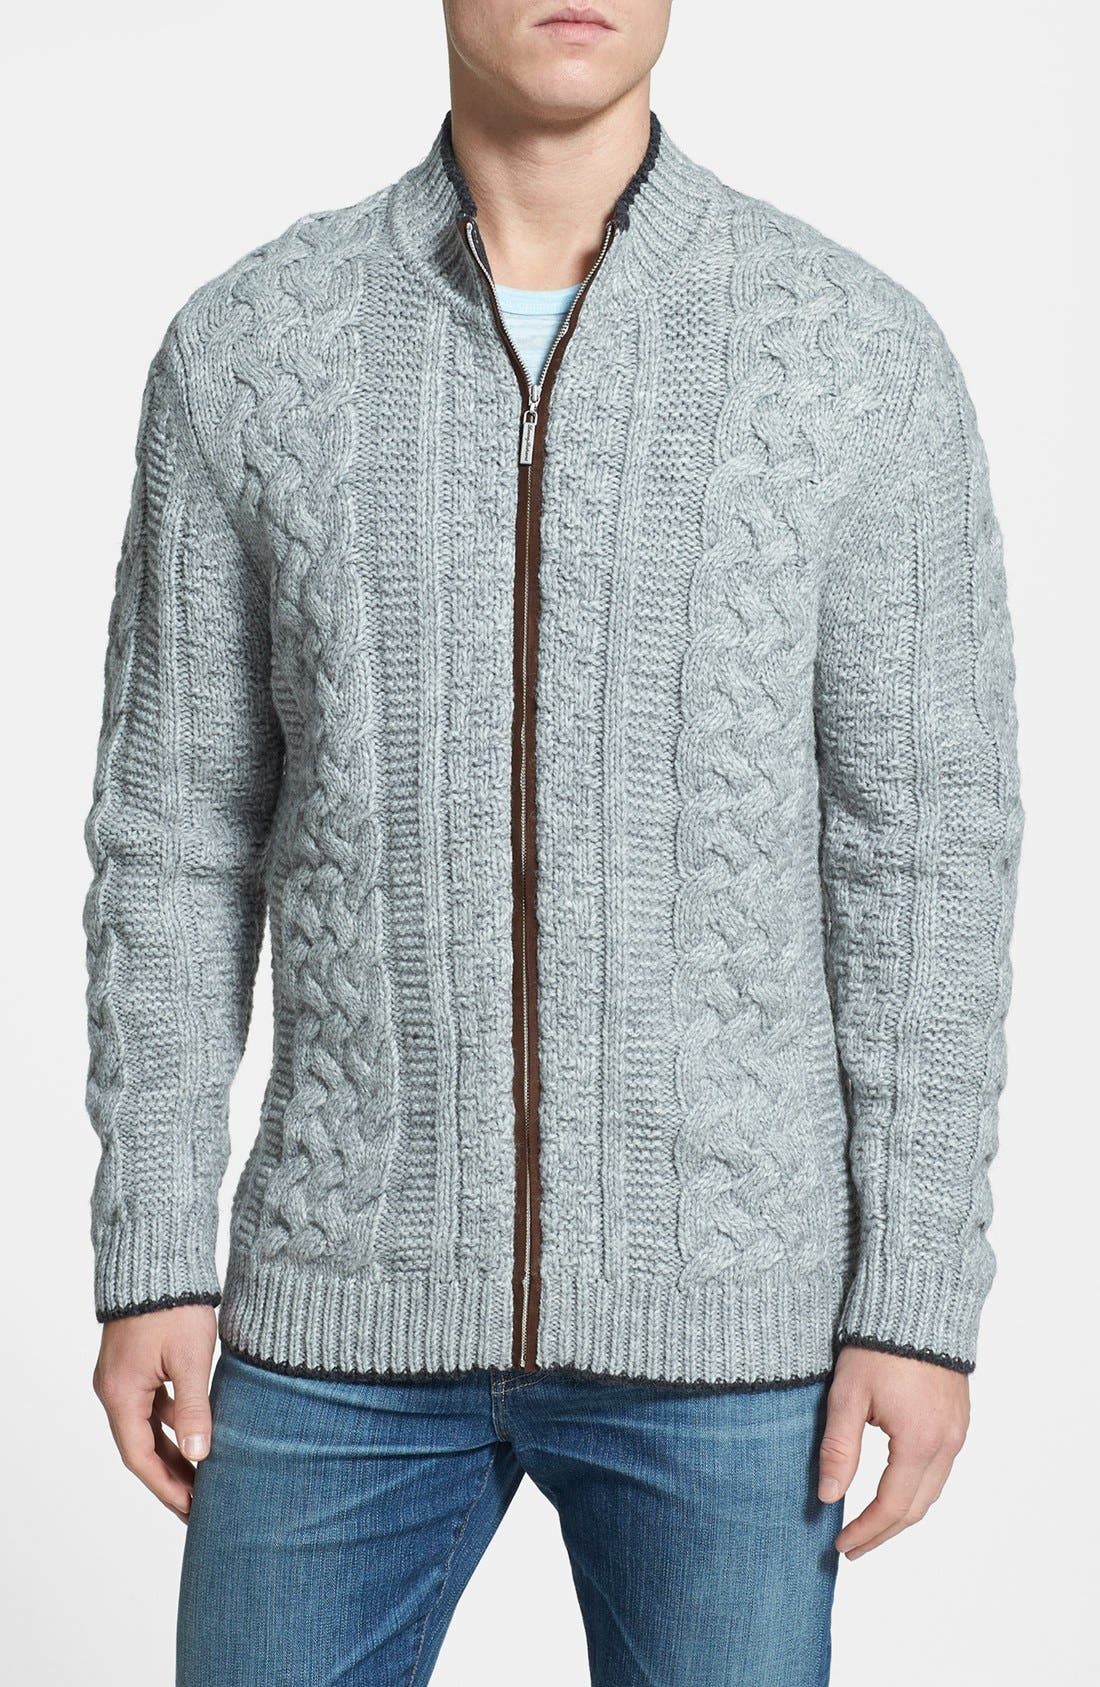 Main Image - Tommy Bahama 'Upstate' Cable Knit Wool Blend Cardigan